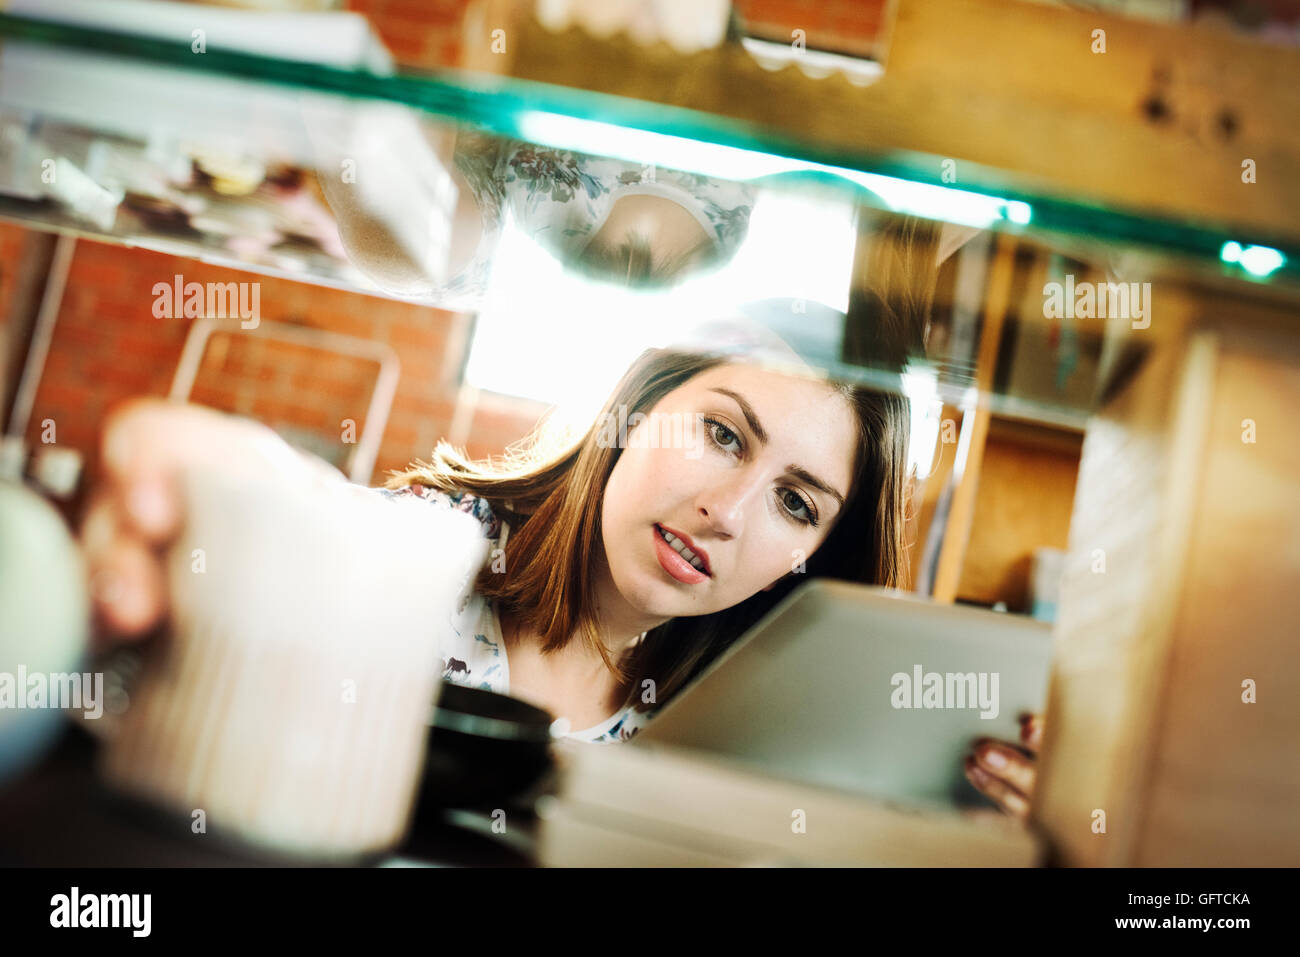 Young woman in a shop holding a digital tablet and a ceramic mug - Stock Image